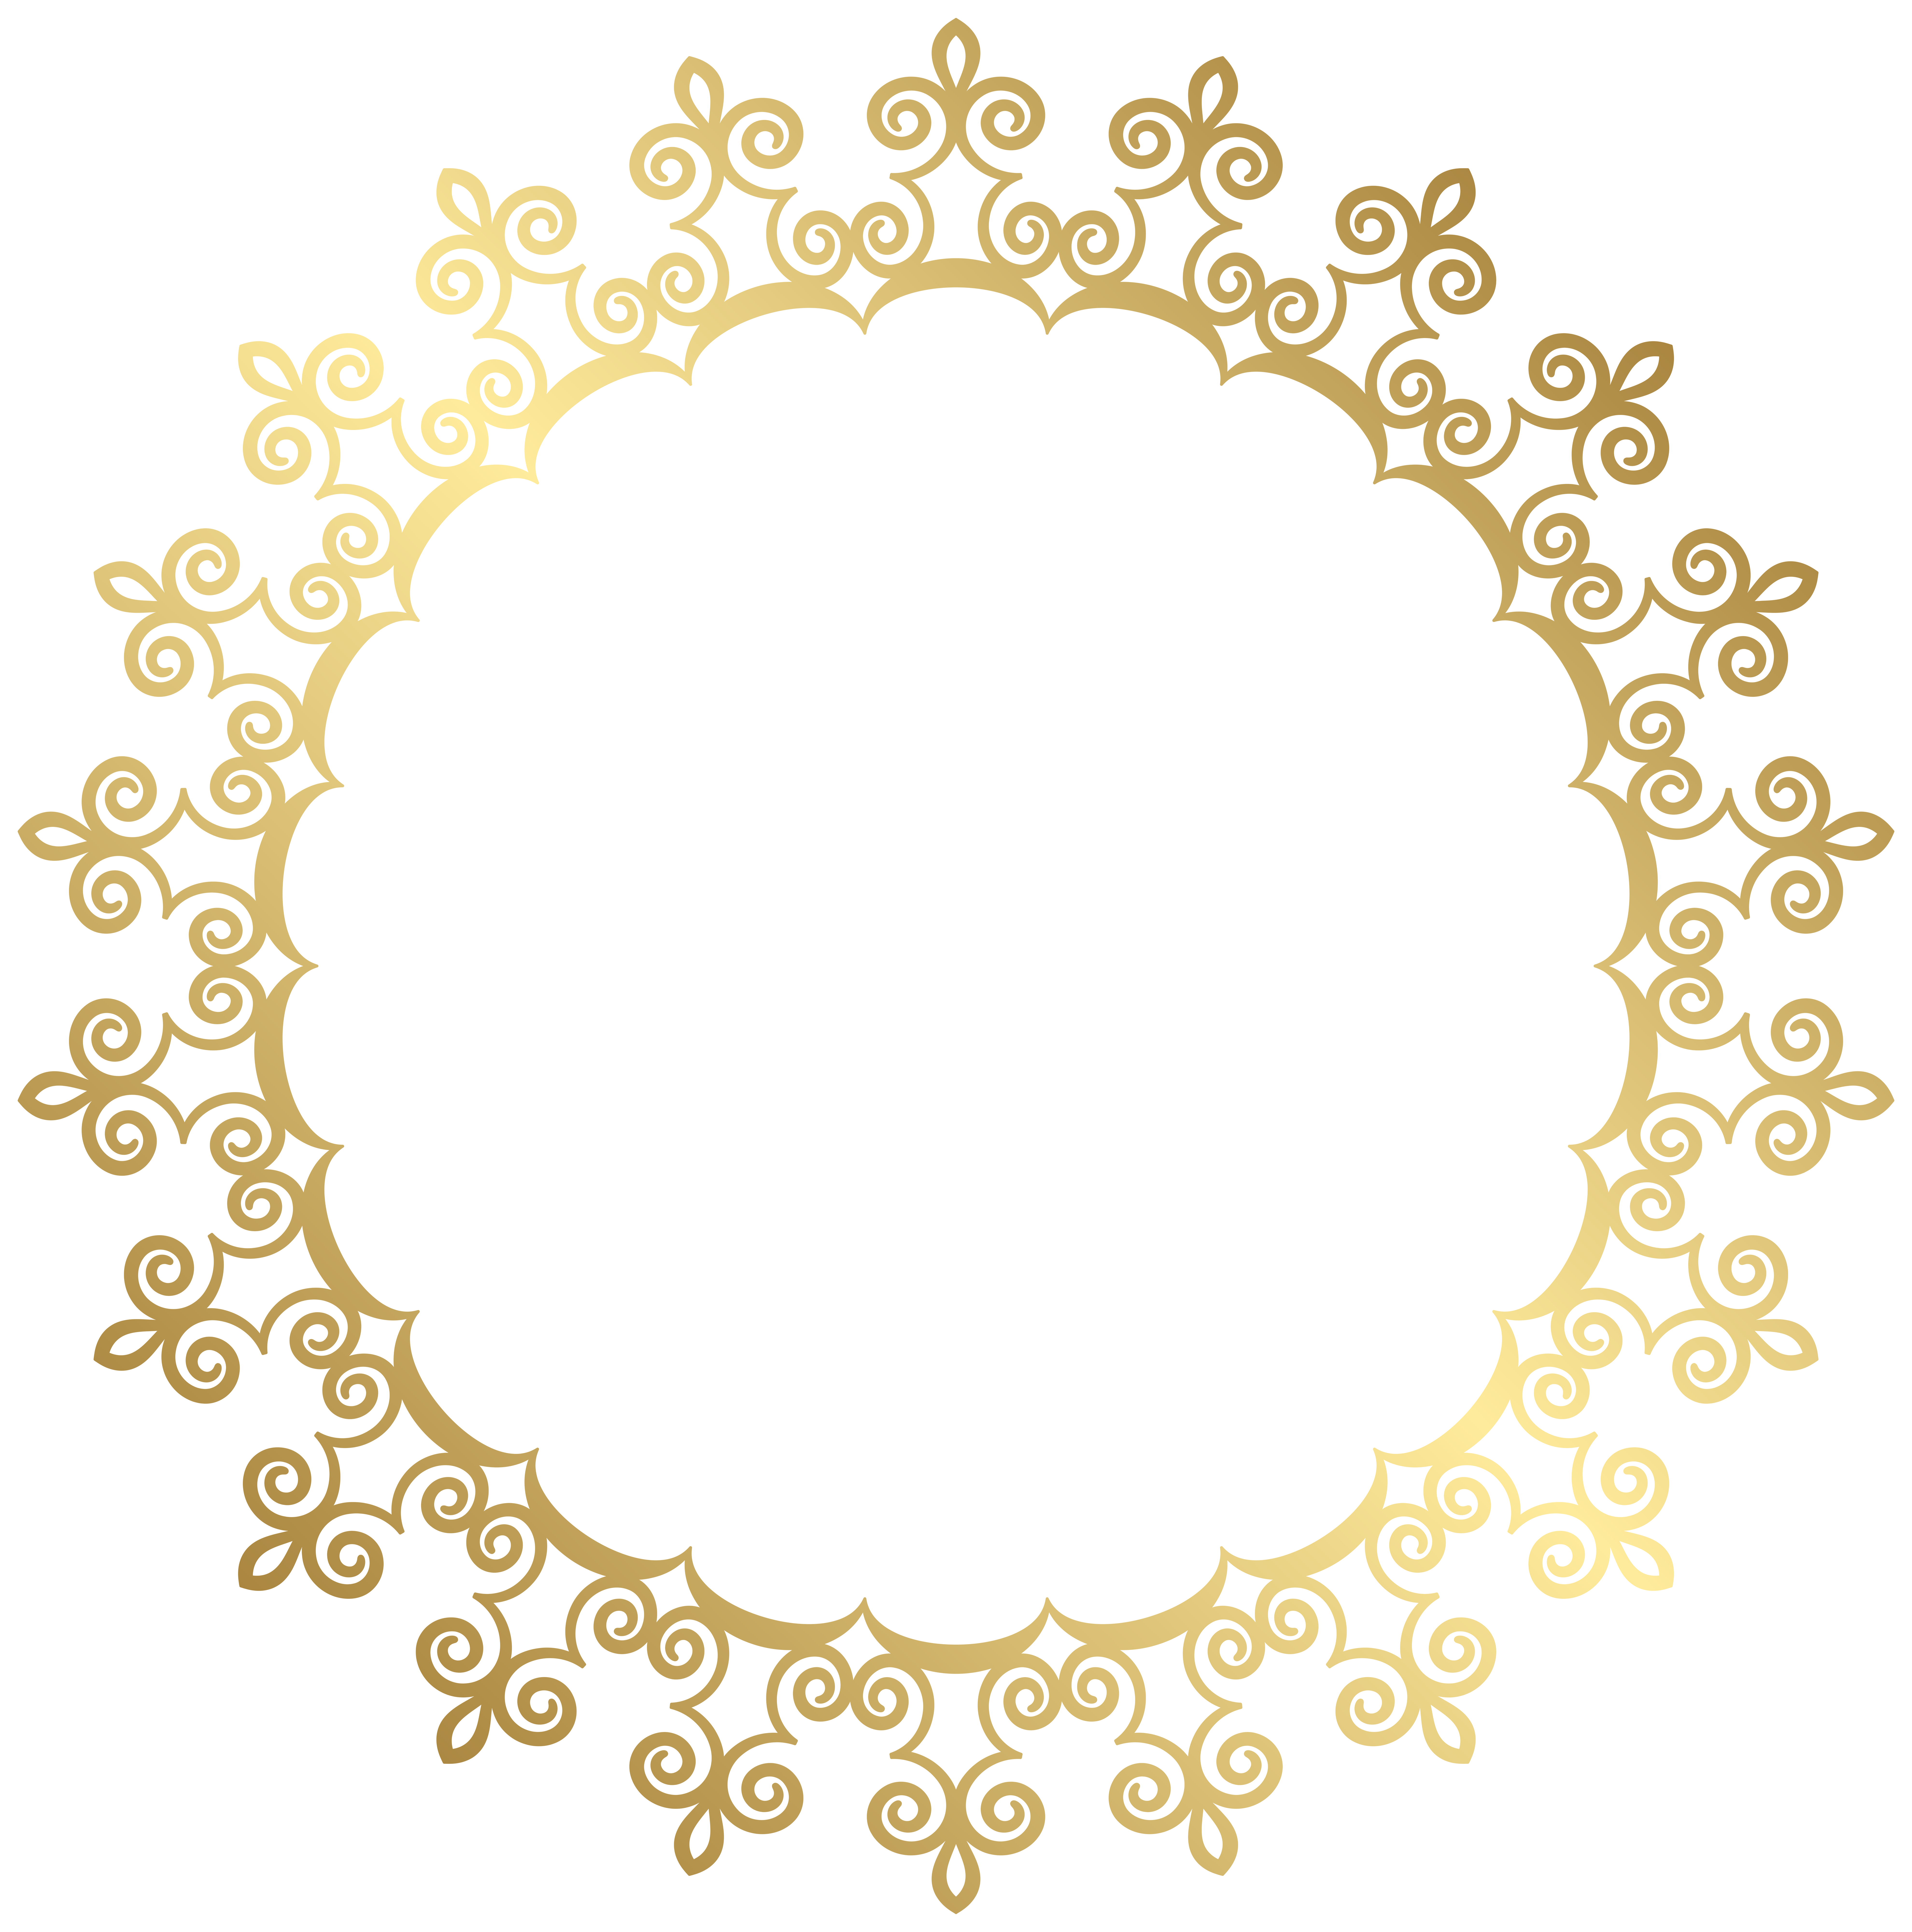 Round gold border frame. Circle clipart decoration